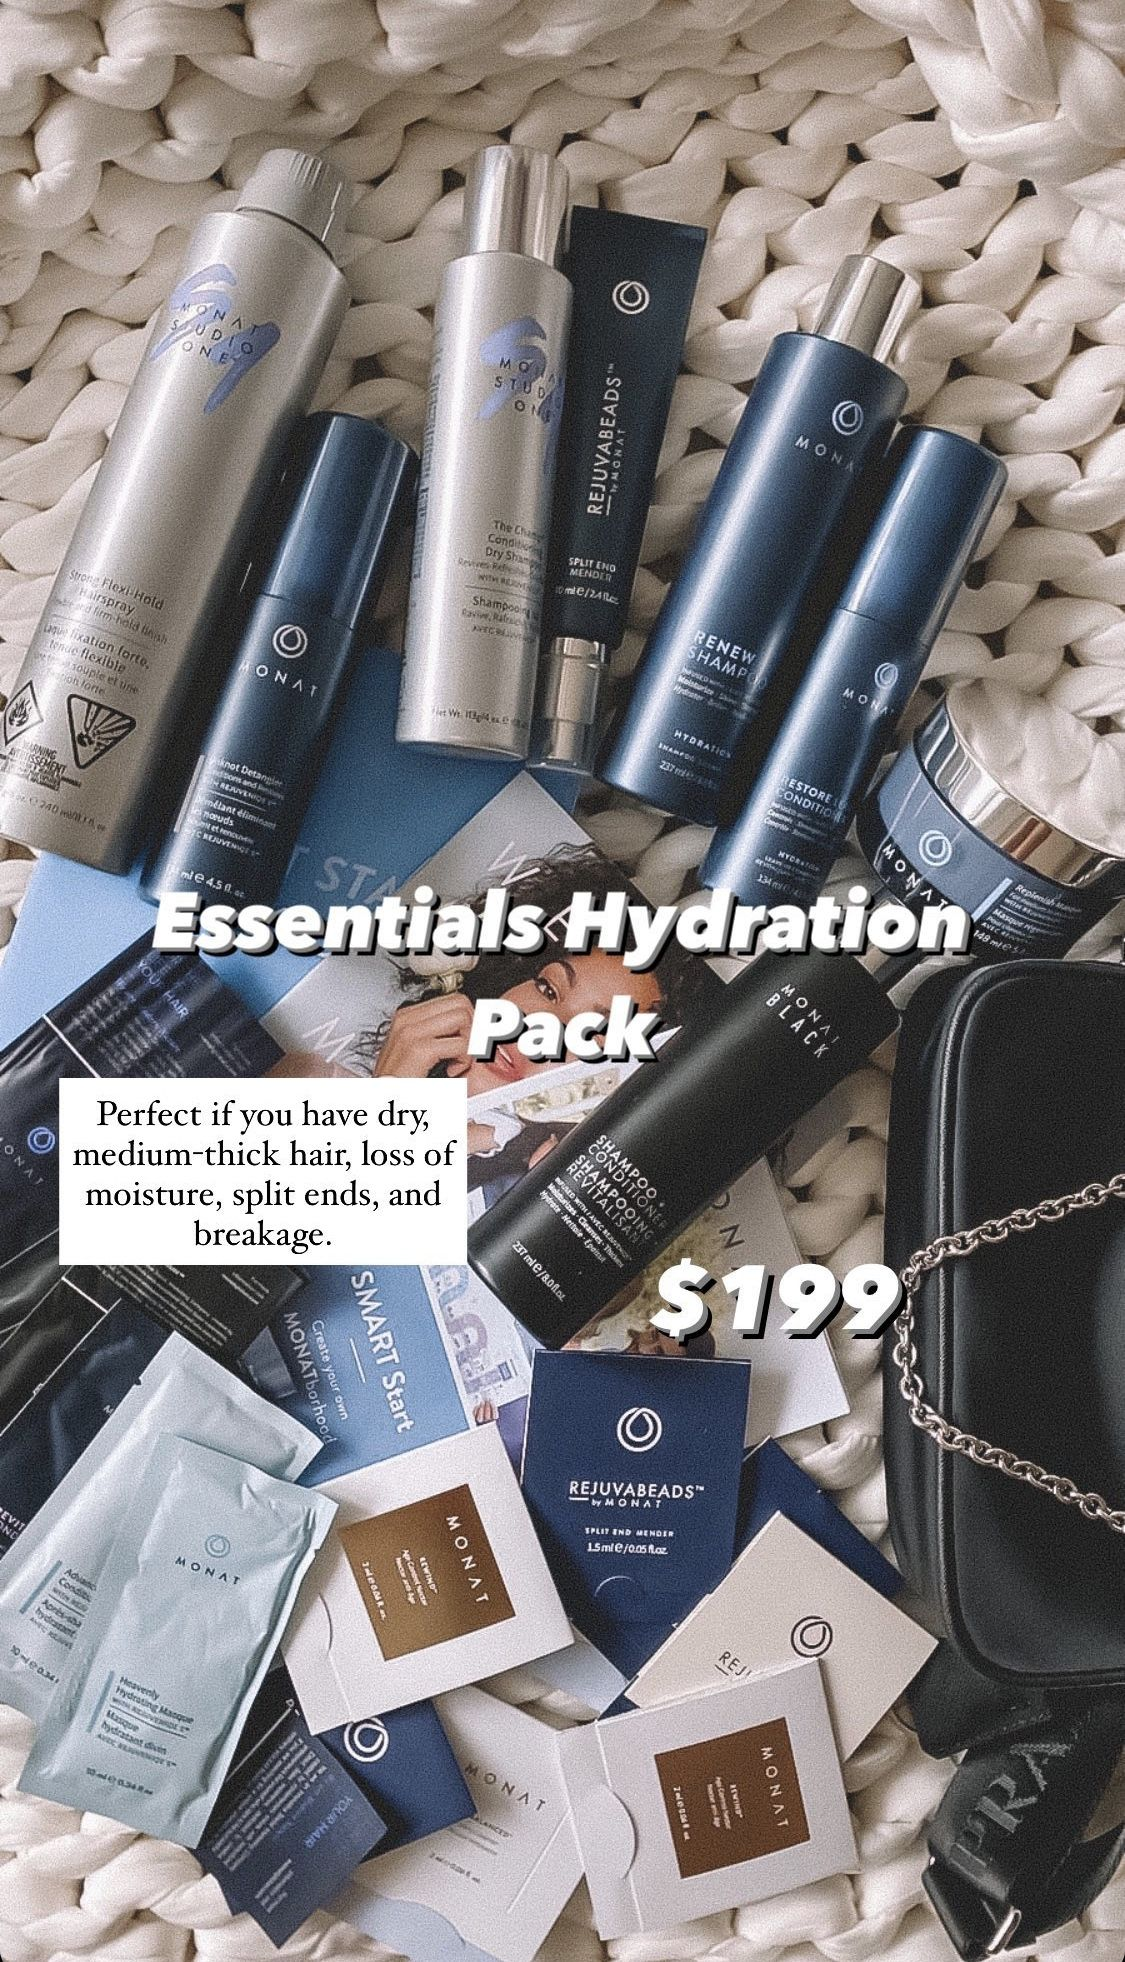 Pin by Jenni M Photography on Monat Product Packs in 2020